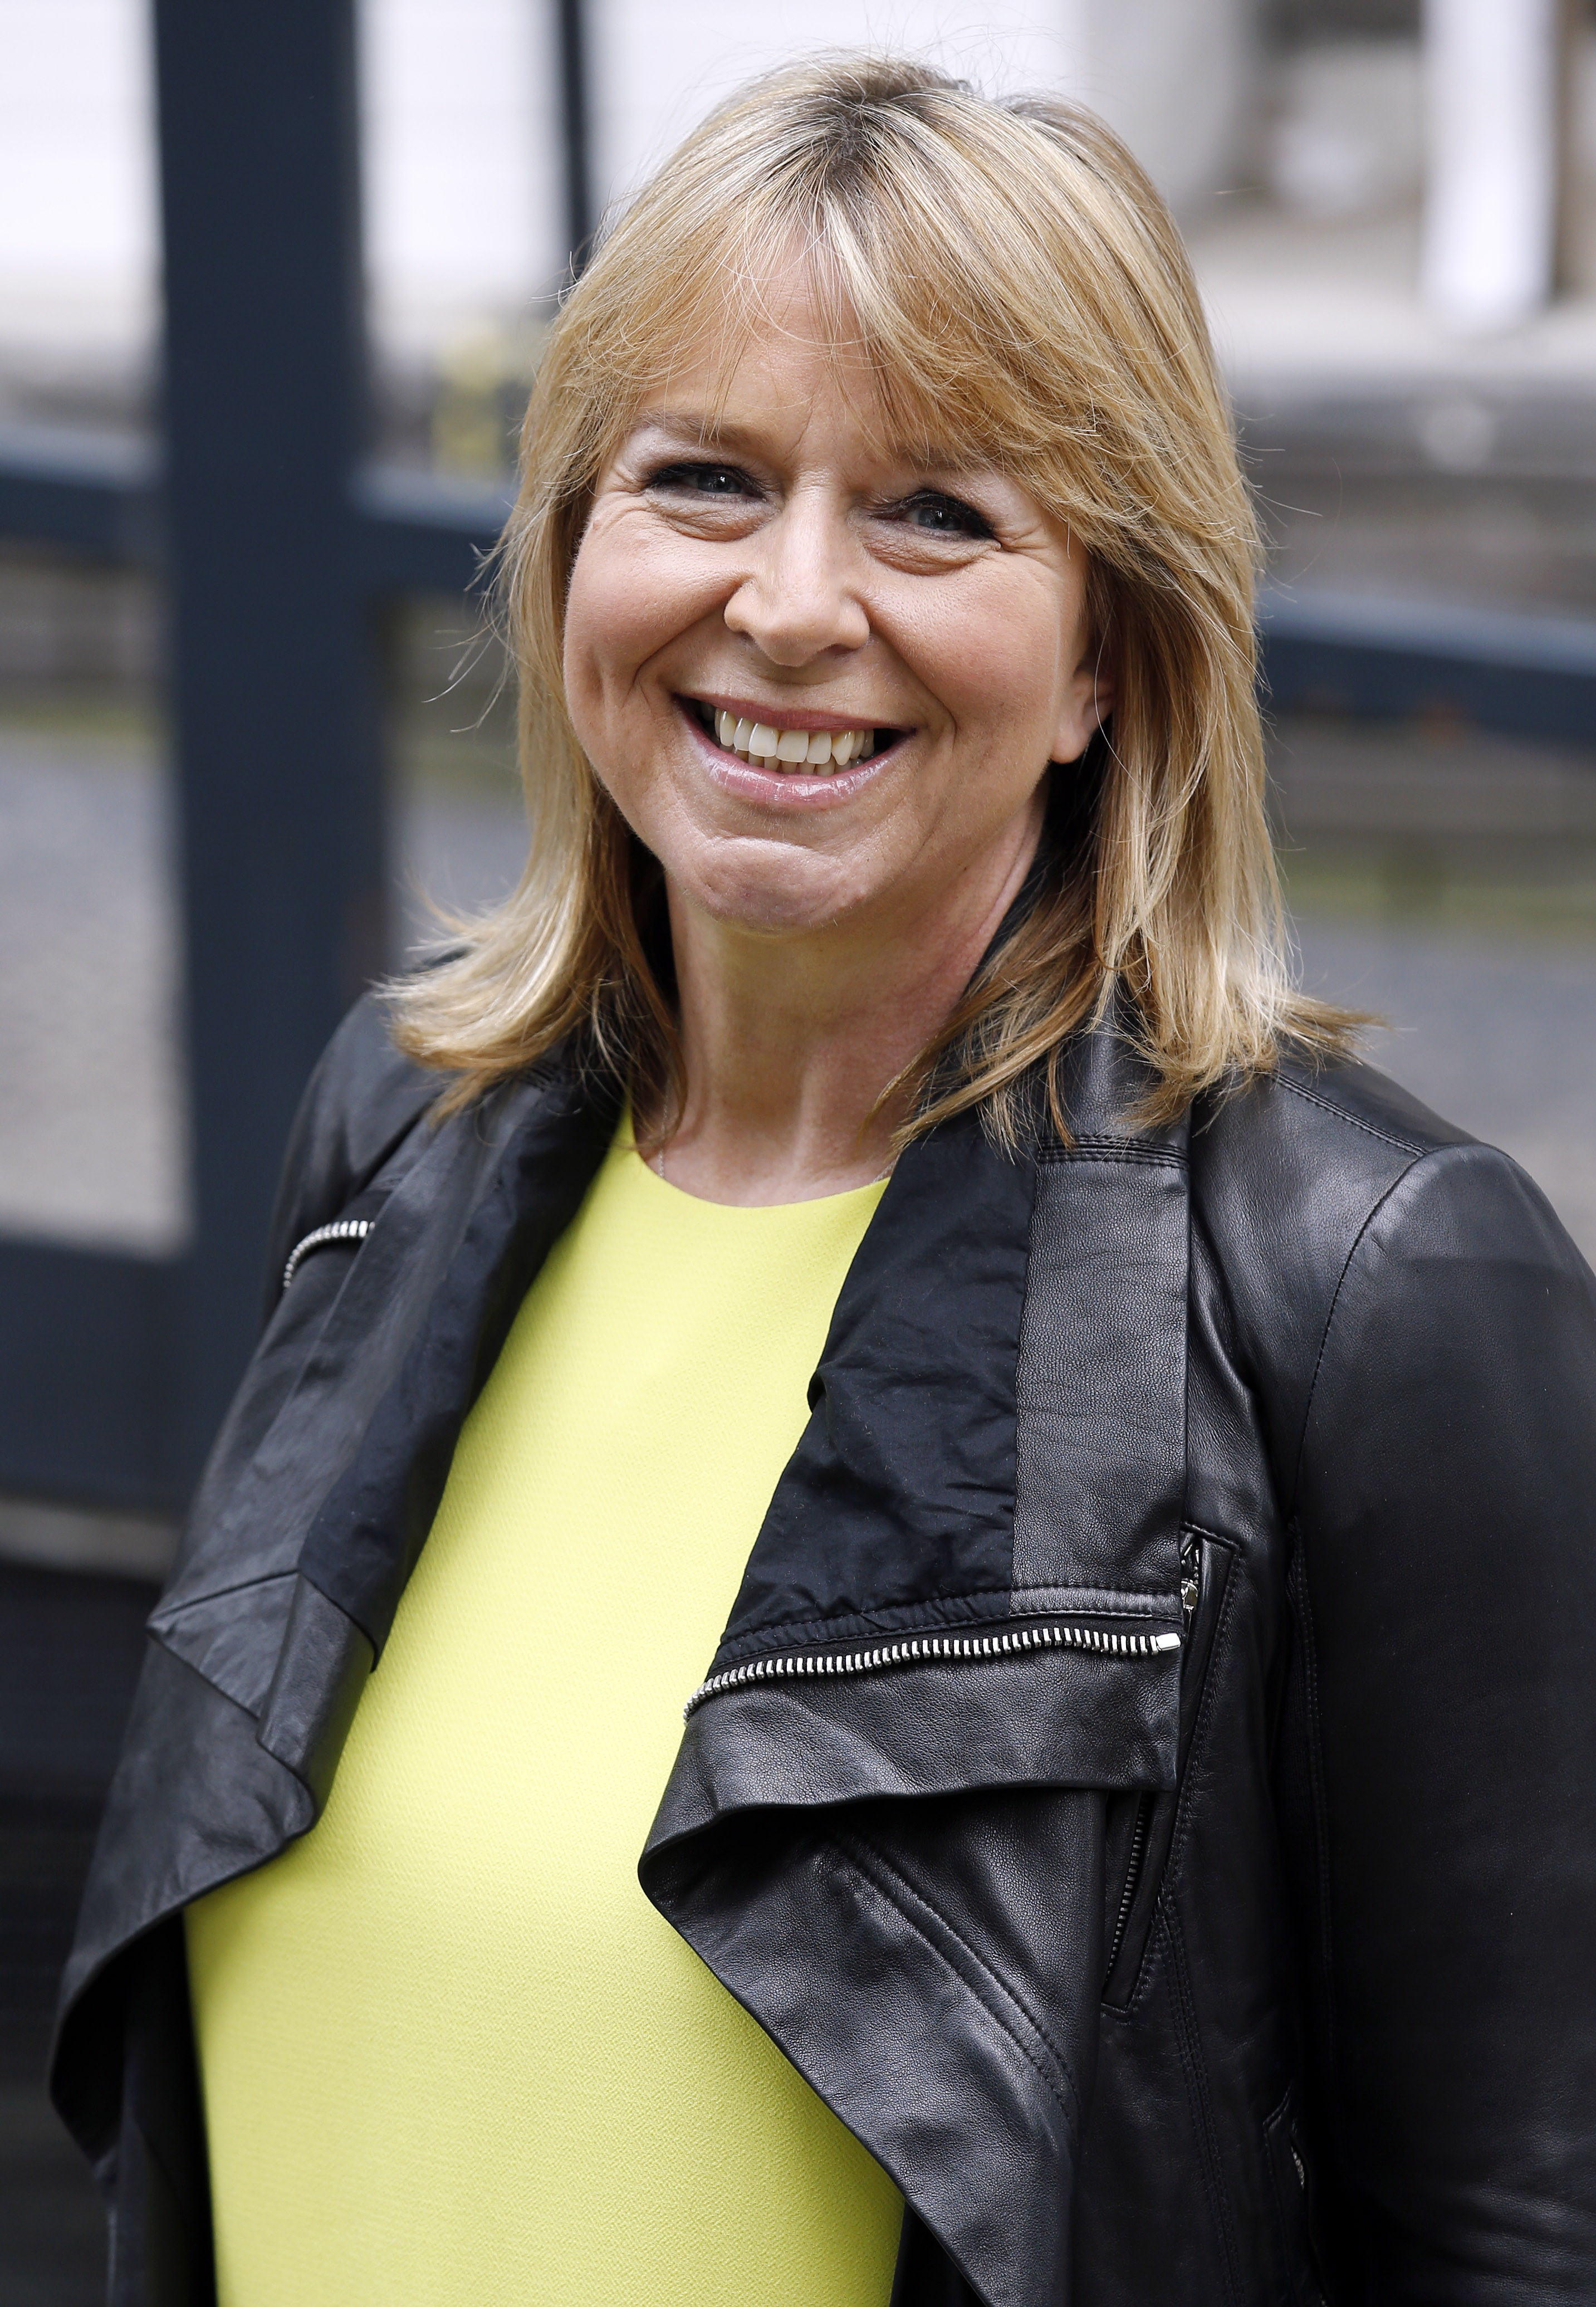 Fern Britton reveals she was assaulted in a lift by a man she had just interviewed